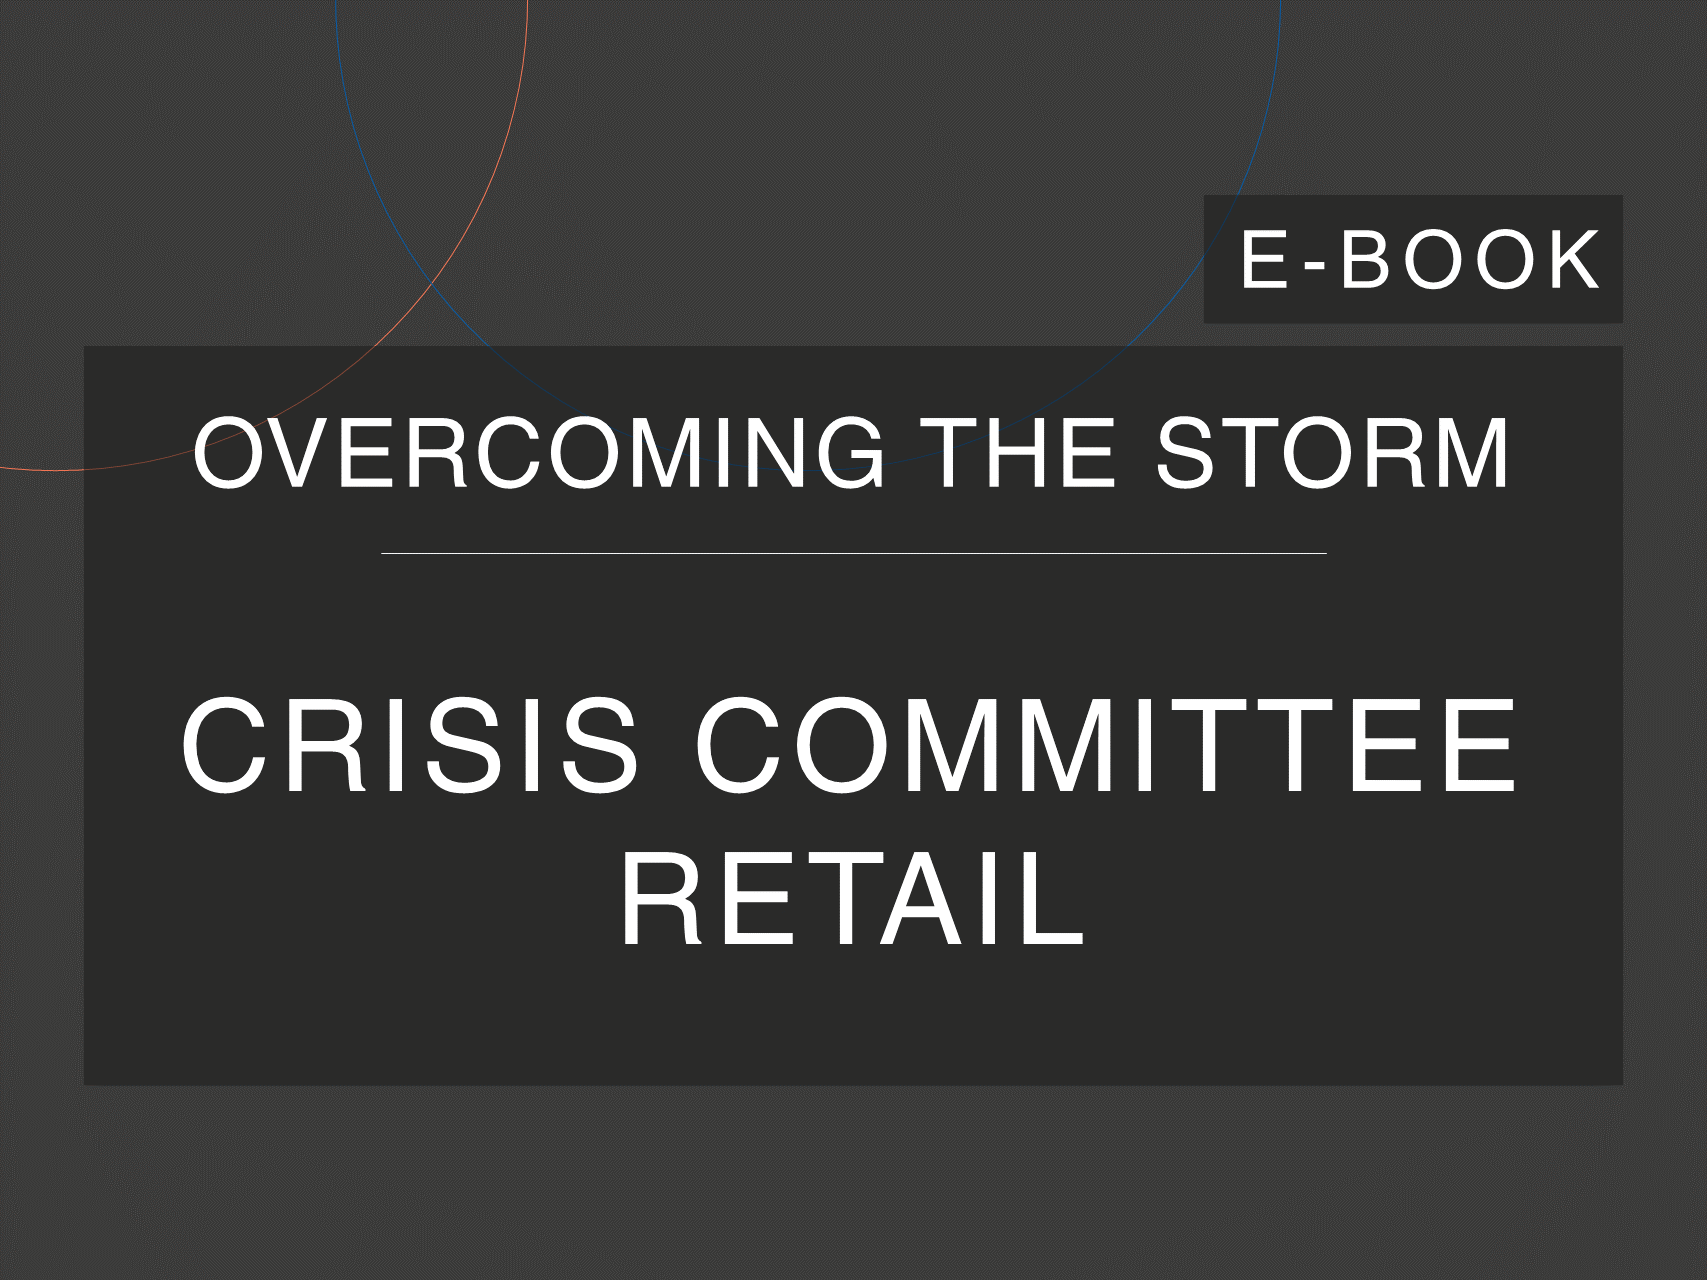 Cosin Consulting's 'Overcoming the Storm' e-Book cover on 'Retail Crisis Committee